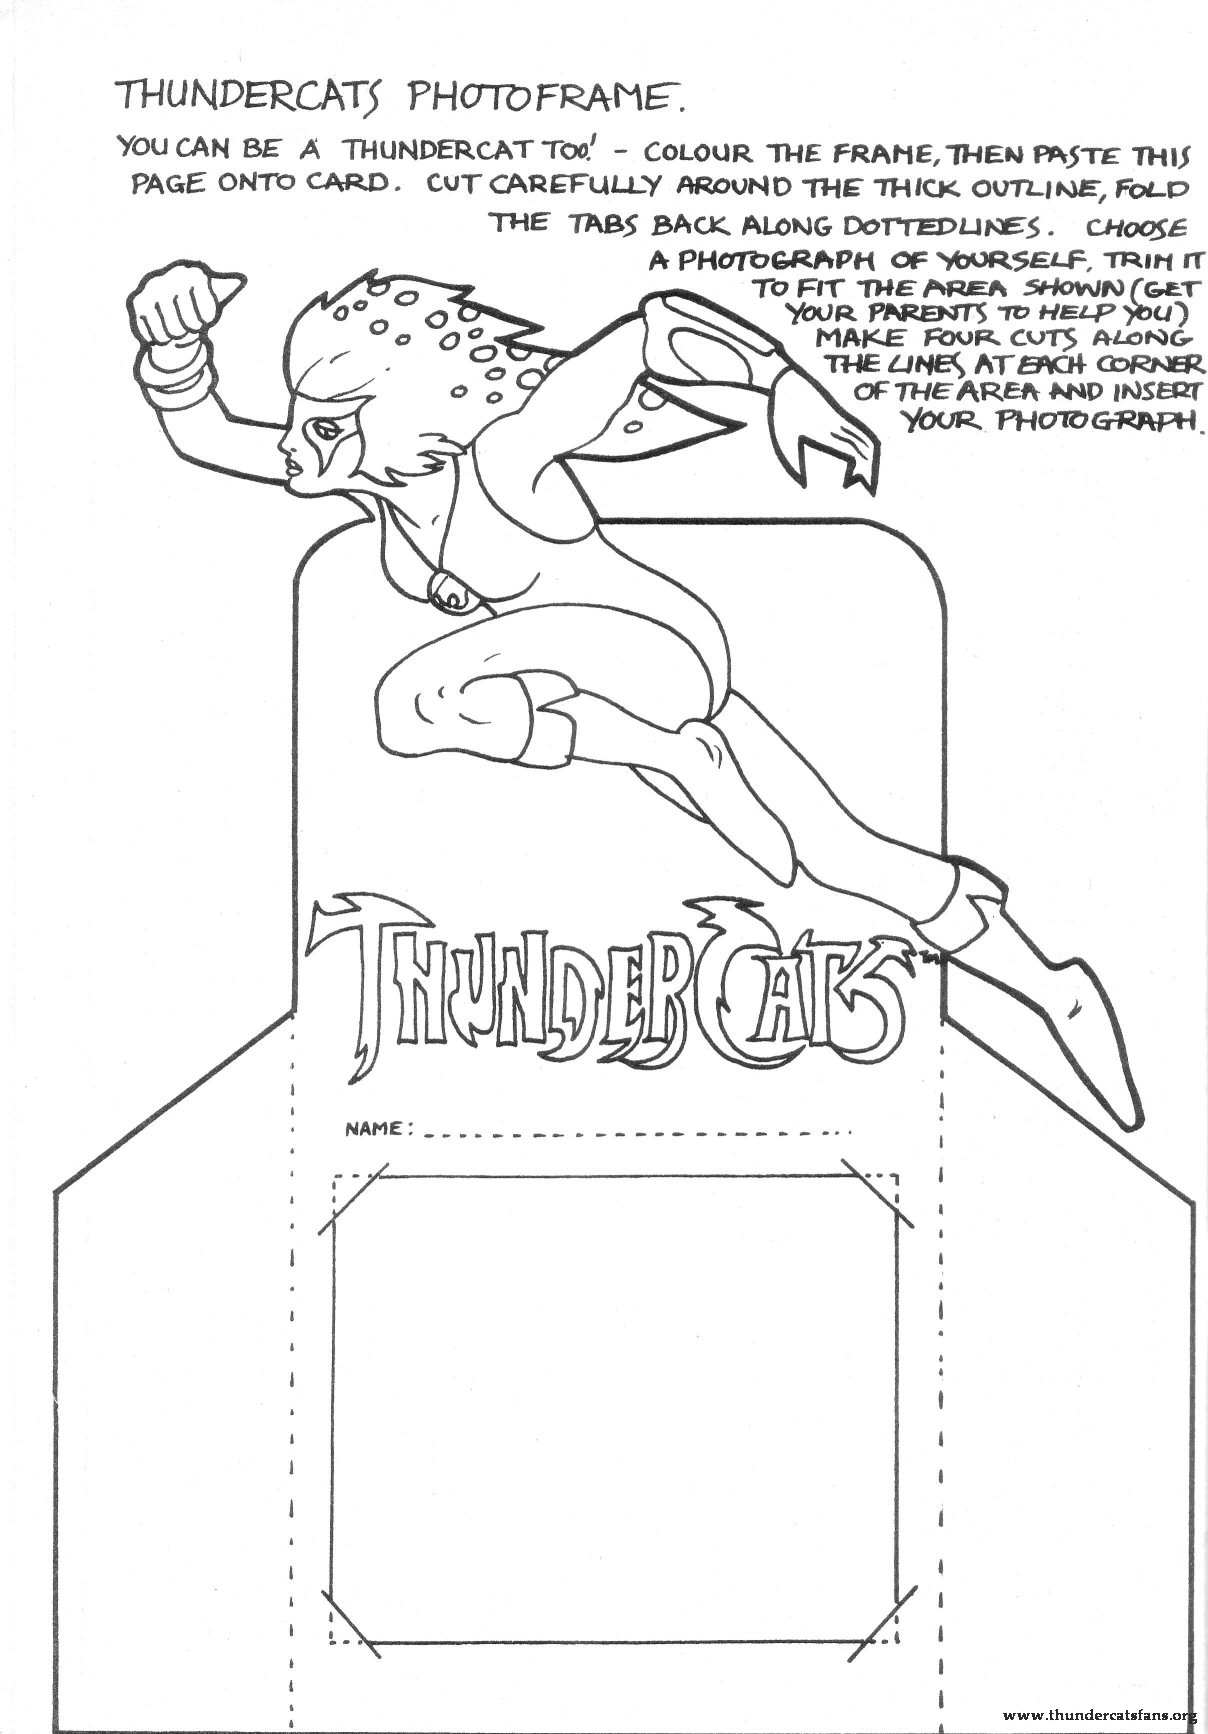 sponge fog maze photo frame - Thundercats Coloring Pages